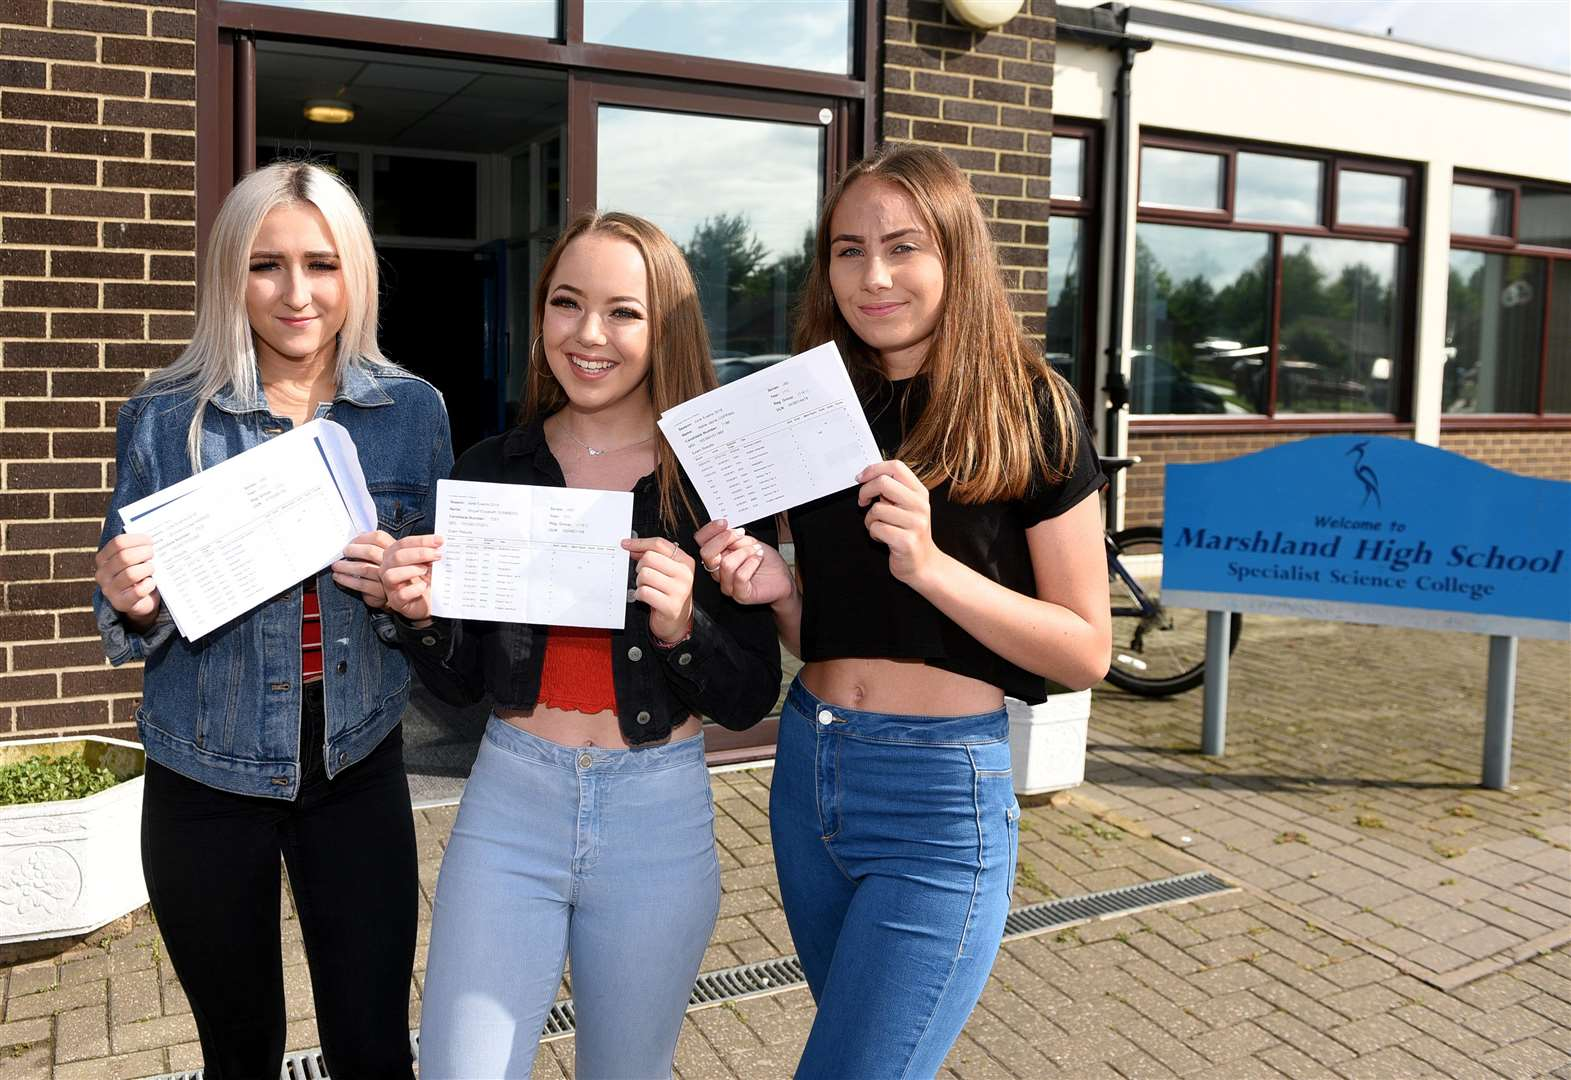 Headteacher of Marshland High School at West Walton is 'delighted' with latest GCSE results